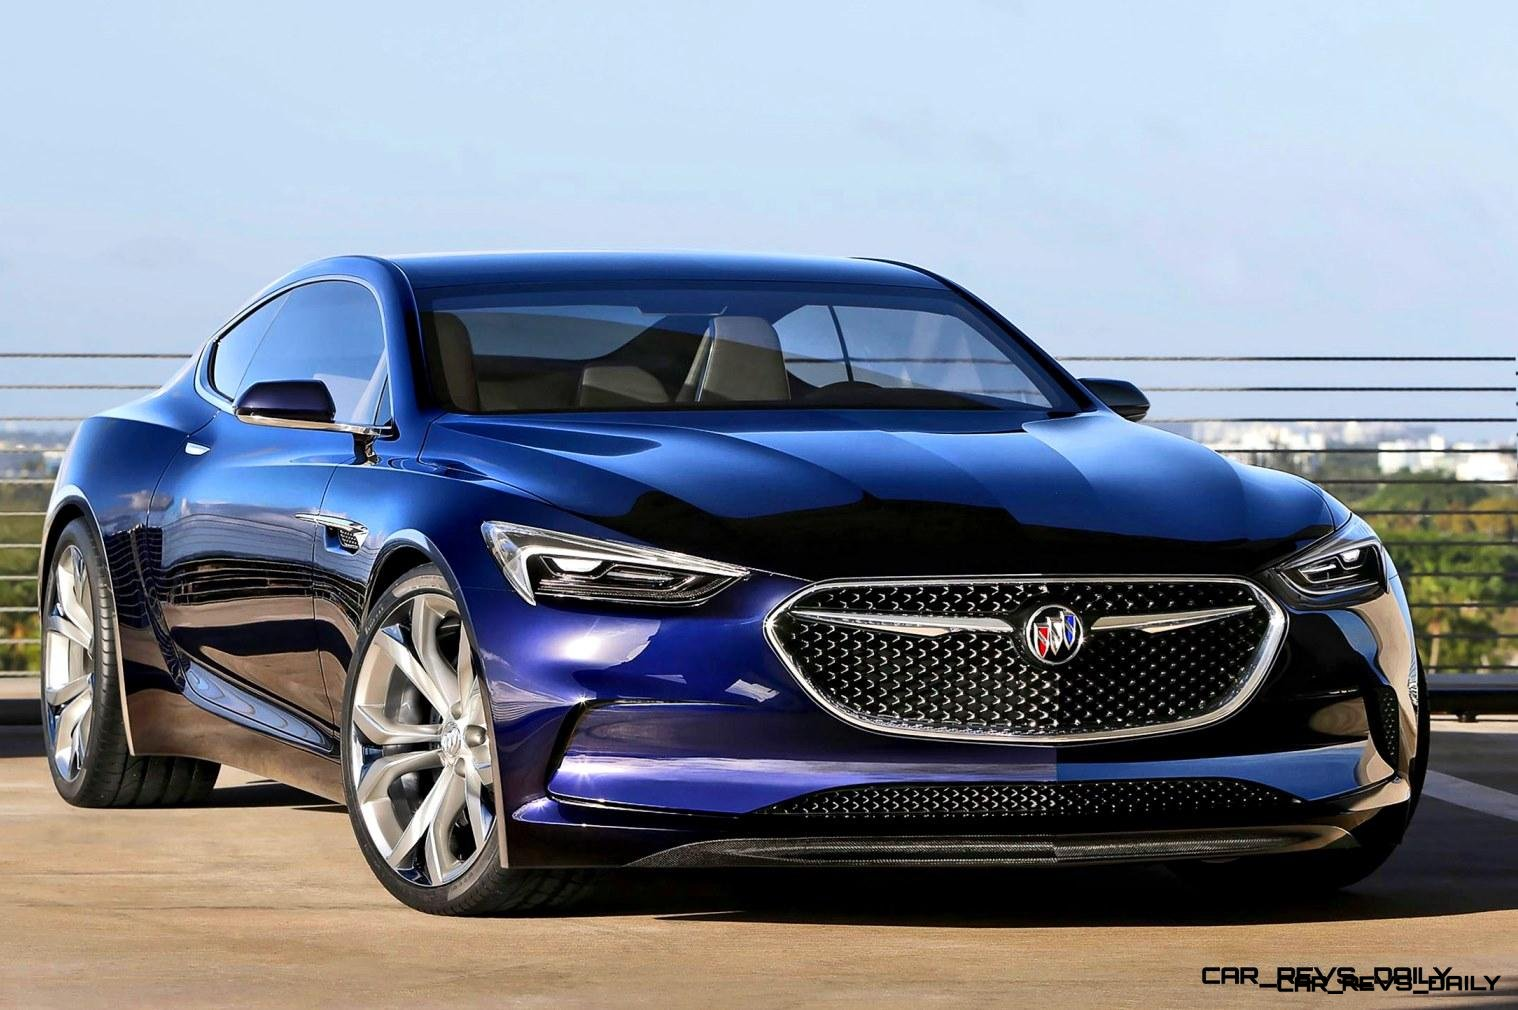 2016 buick avista concept supercoupe as first glimpse of next gnx. Black Bedroom Furniture Sets. Home Design Ideas